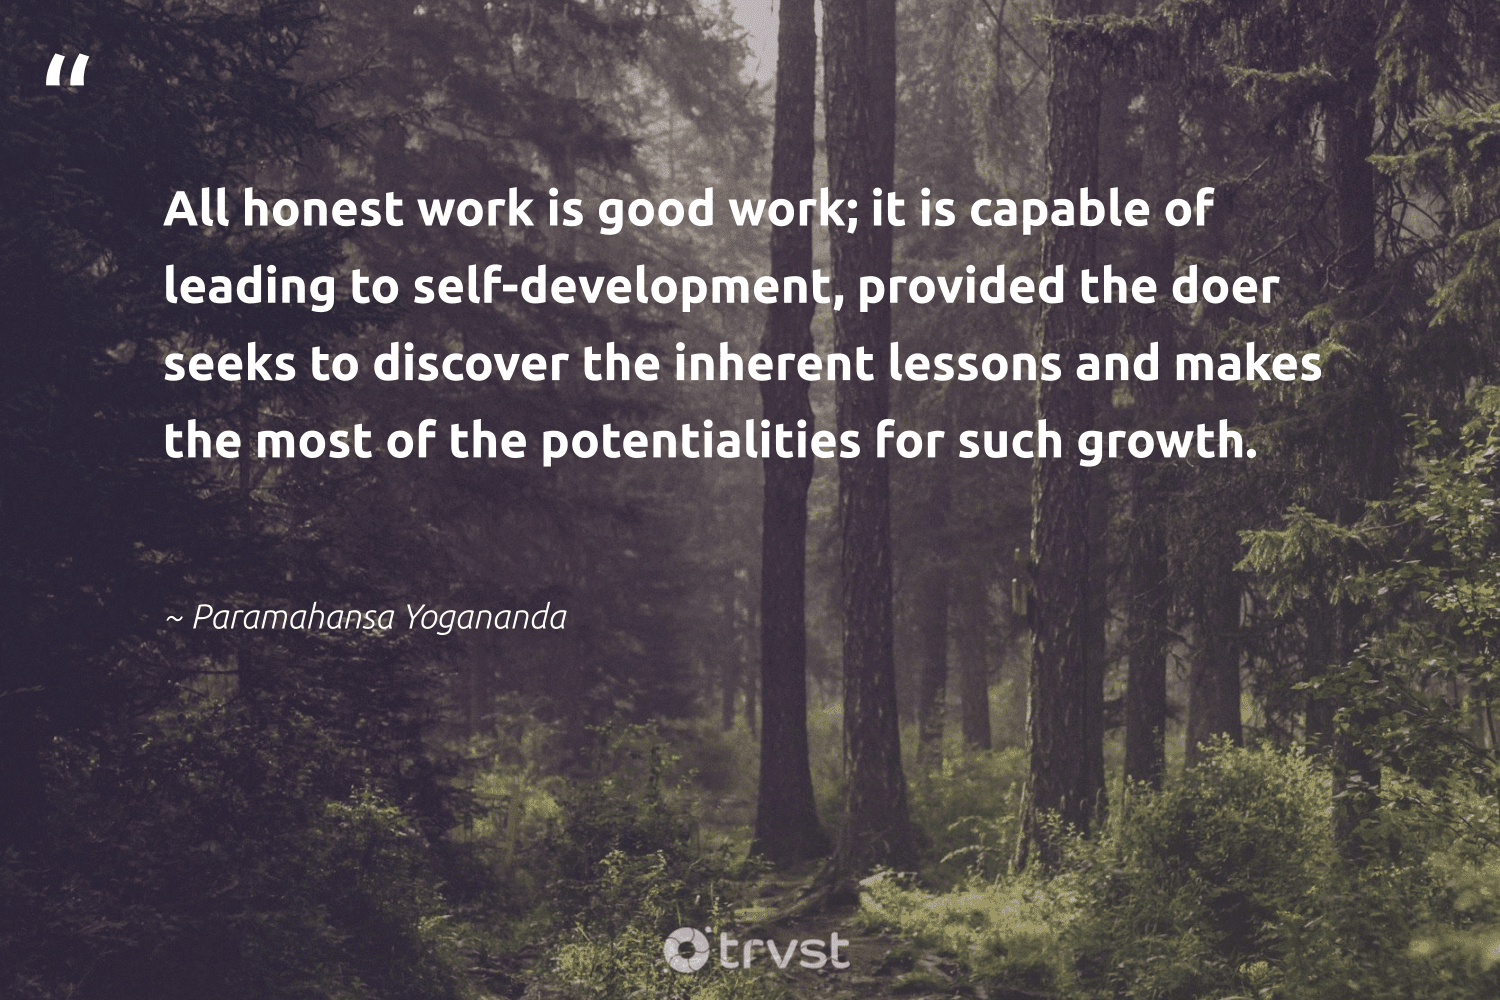 """""""All honest work is good work; it is capable of leading to self-development, provided the doer seeks to discover the inherent lessons and makes the most of the potentialities for such growth.""""  - Paramahansa Yogananda #trvst #quotes #development #softskills #changetheworld #begreat #ecoconscious #futureofwork #dosomething #nevergiveup #beinspired #bethechange"""